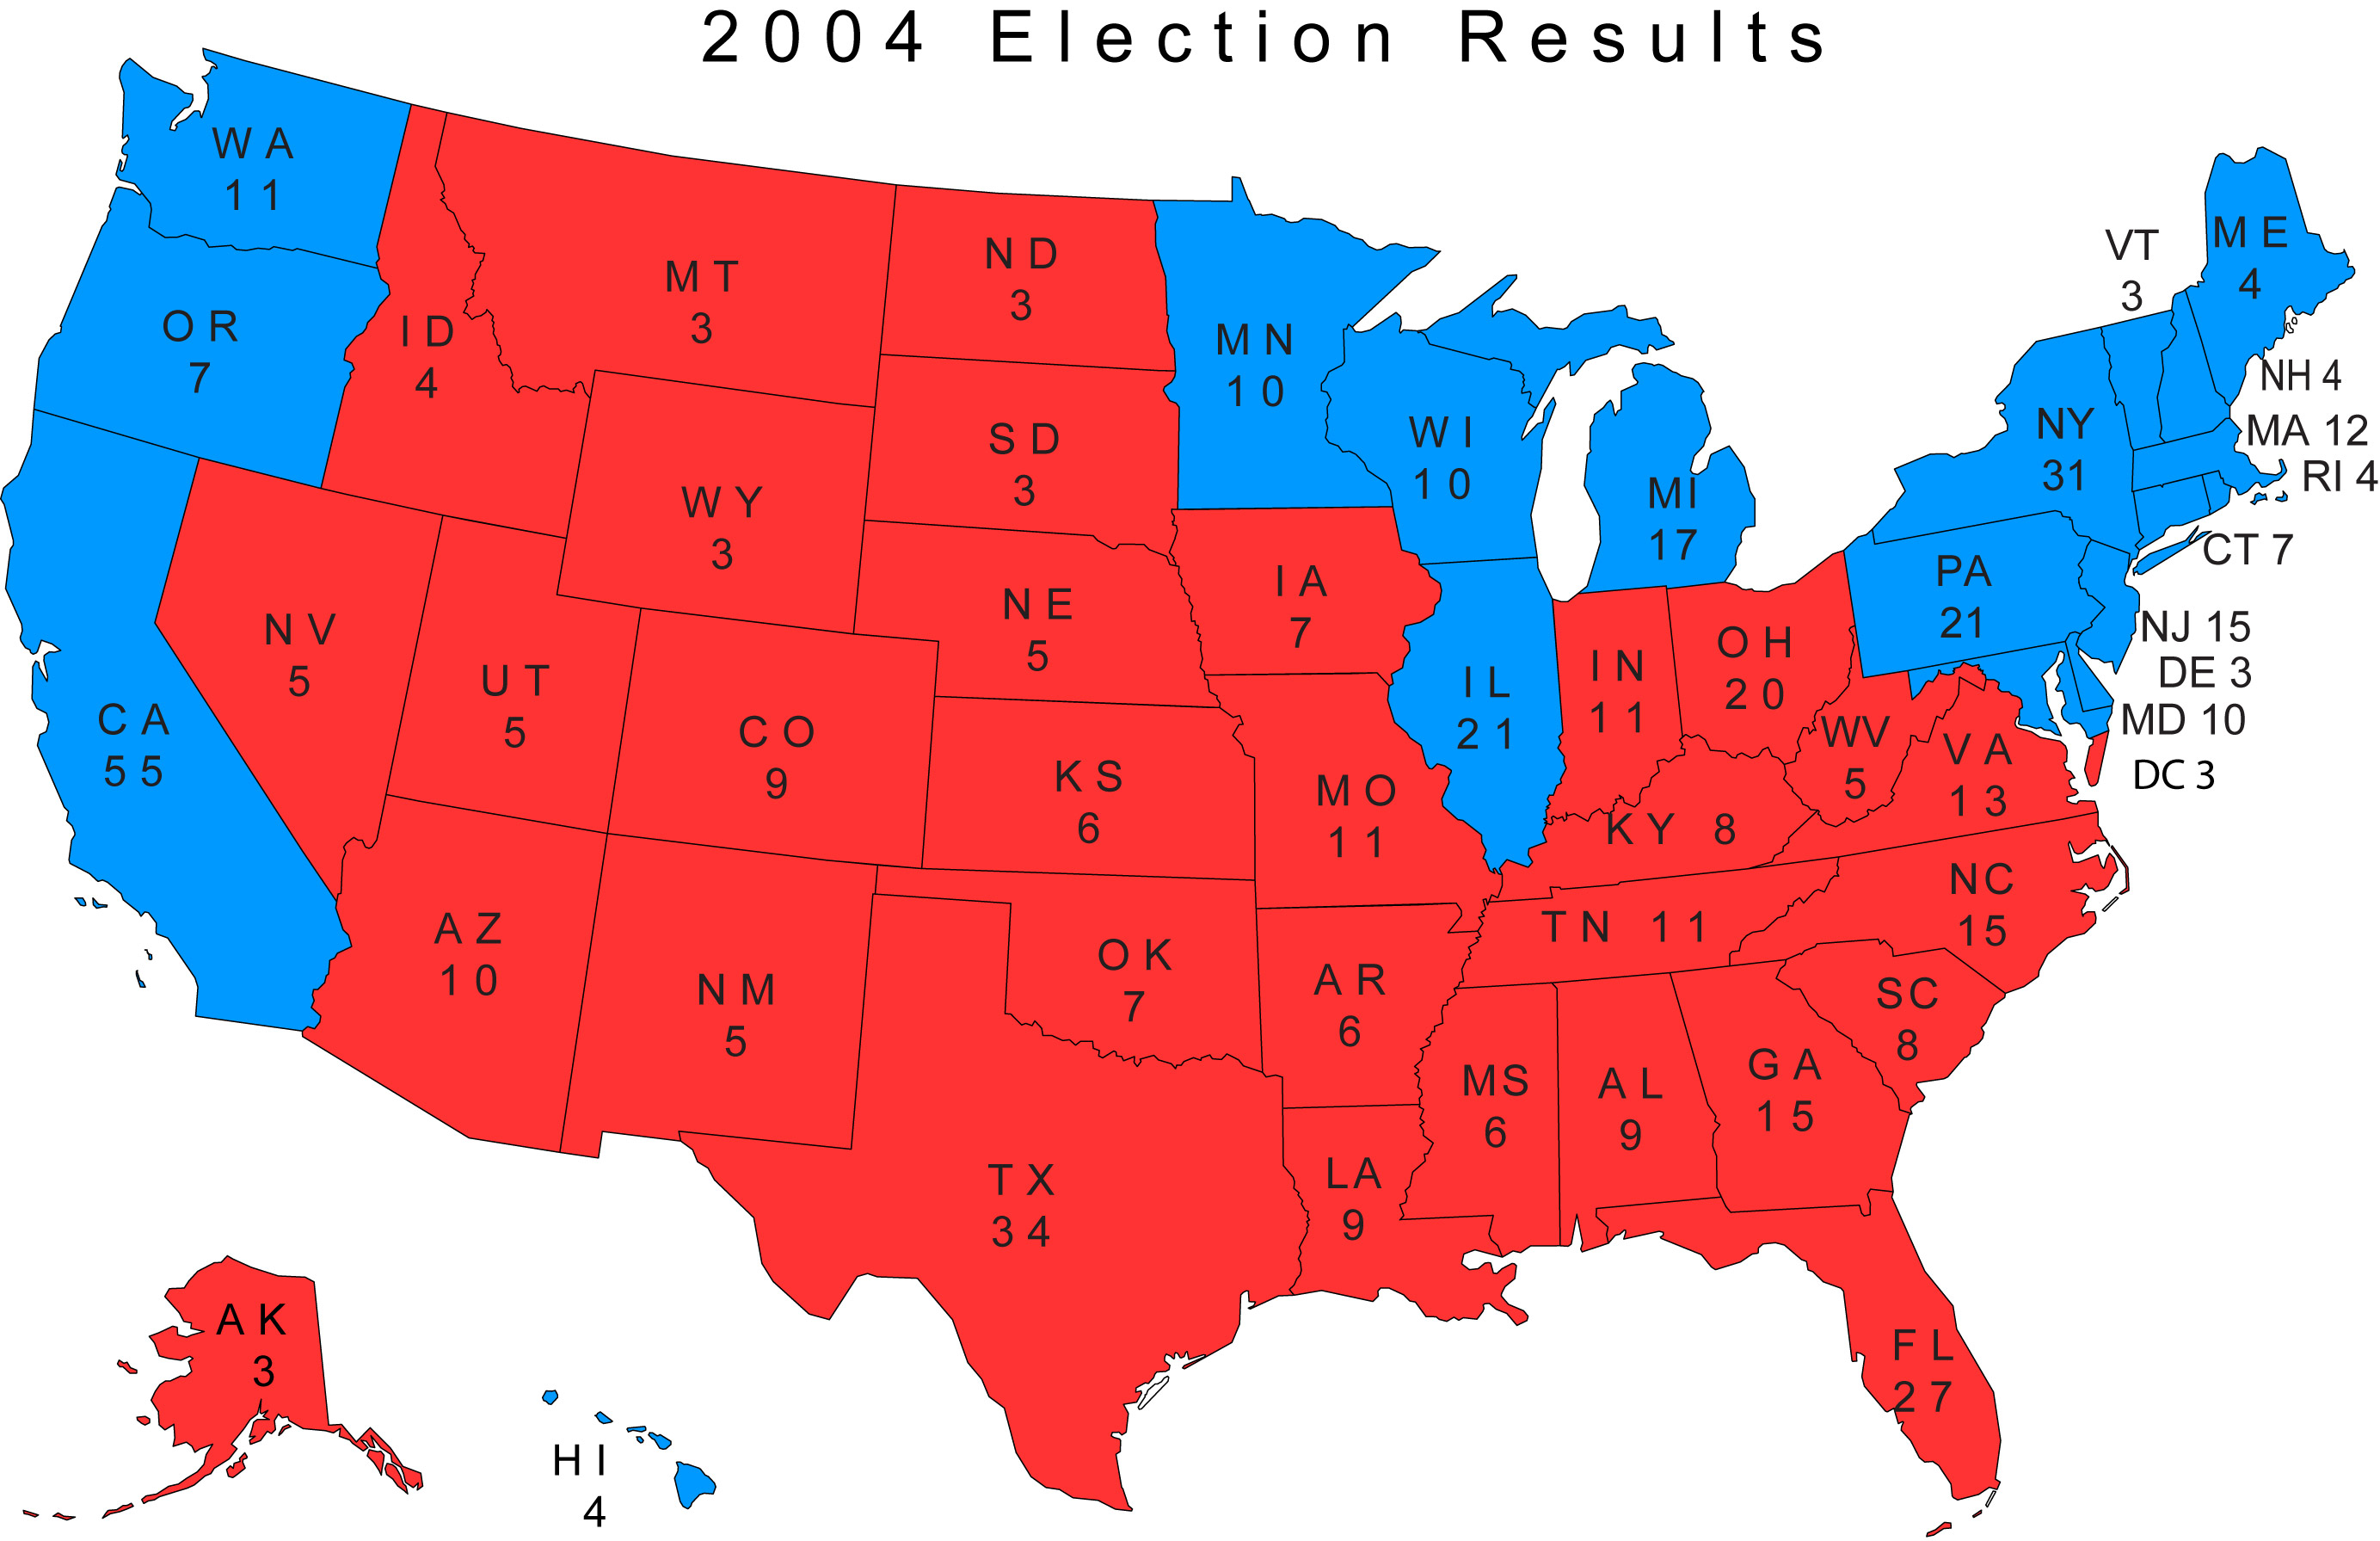 2004 election results